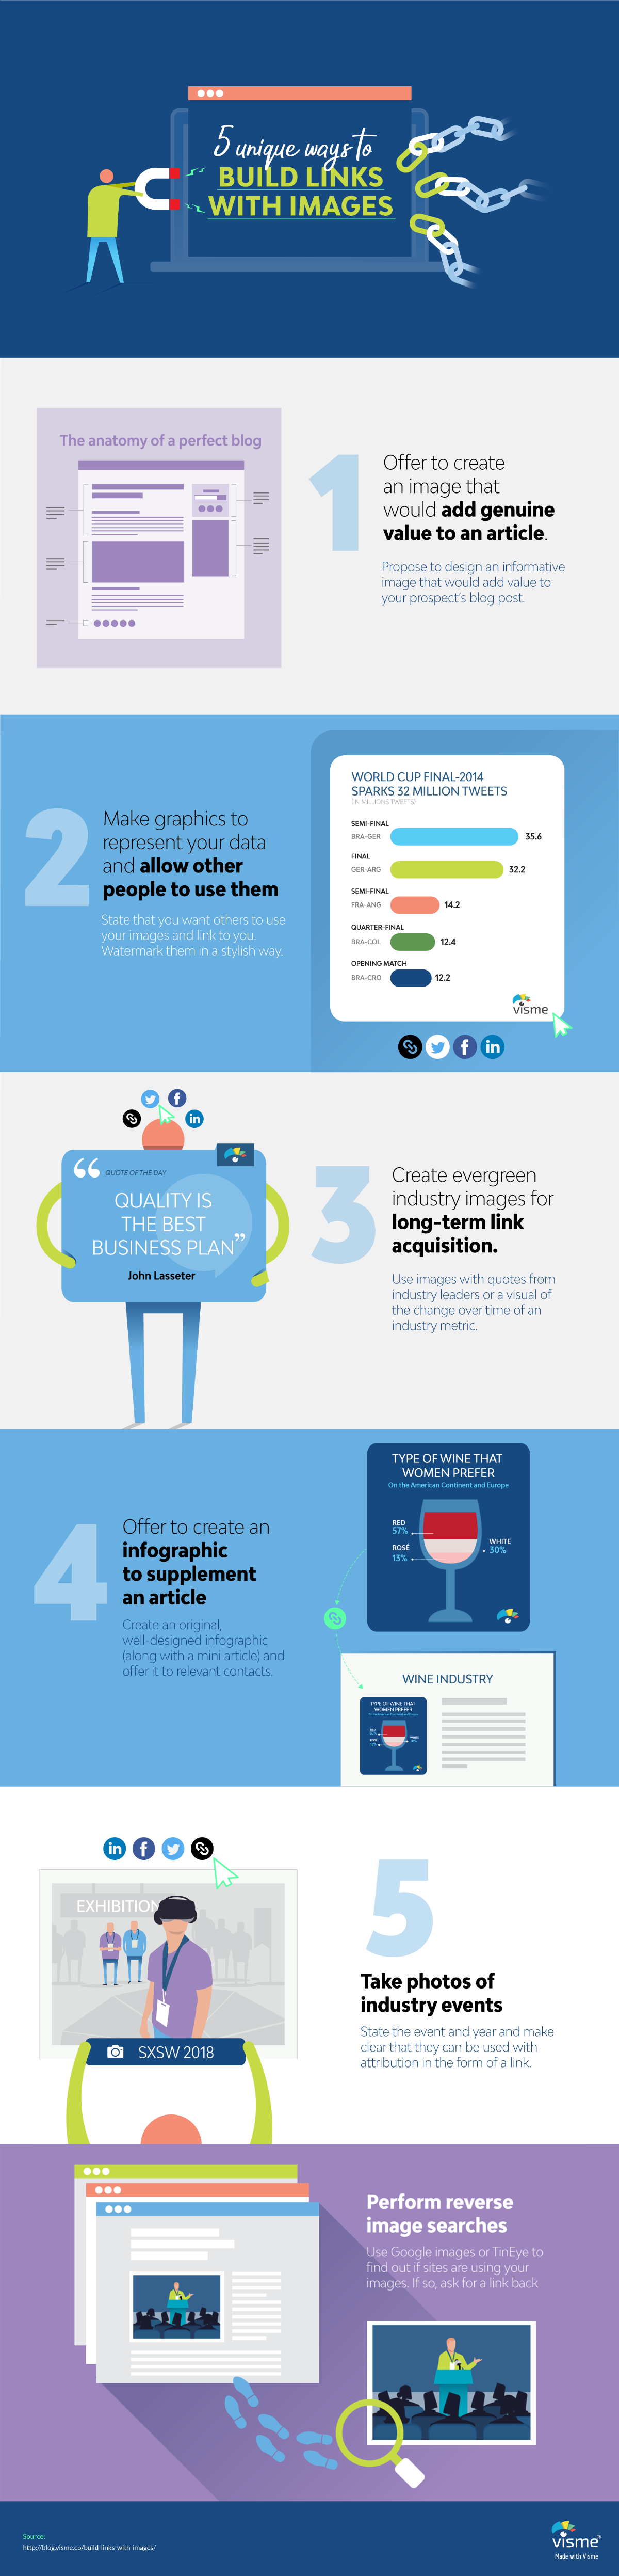 5 Unique Ways to Build Links with Images infographic